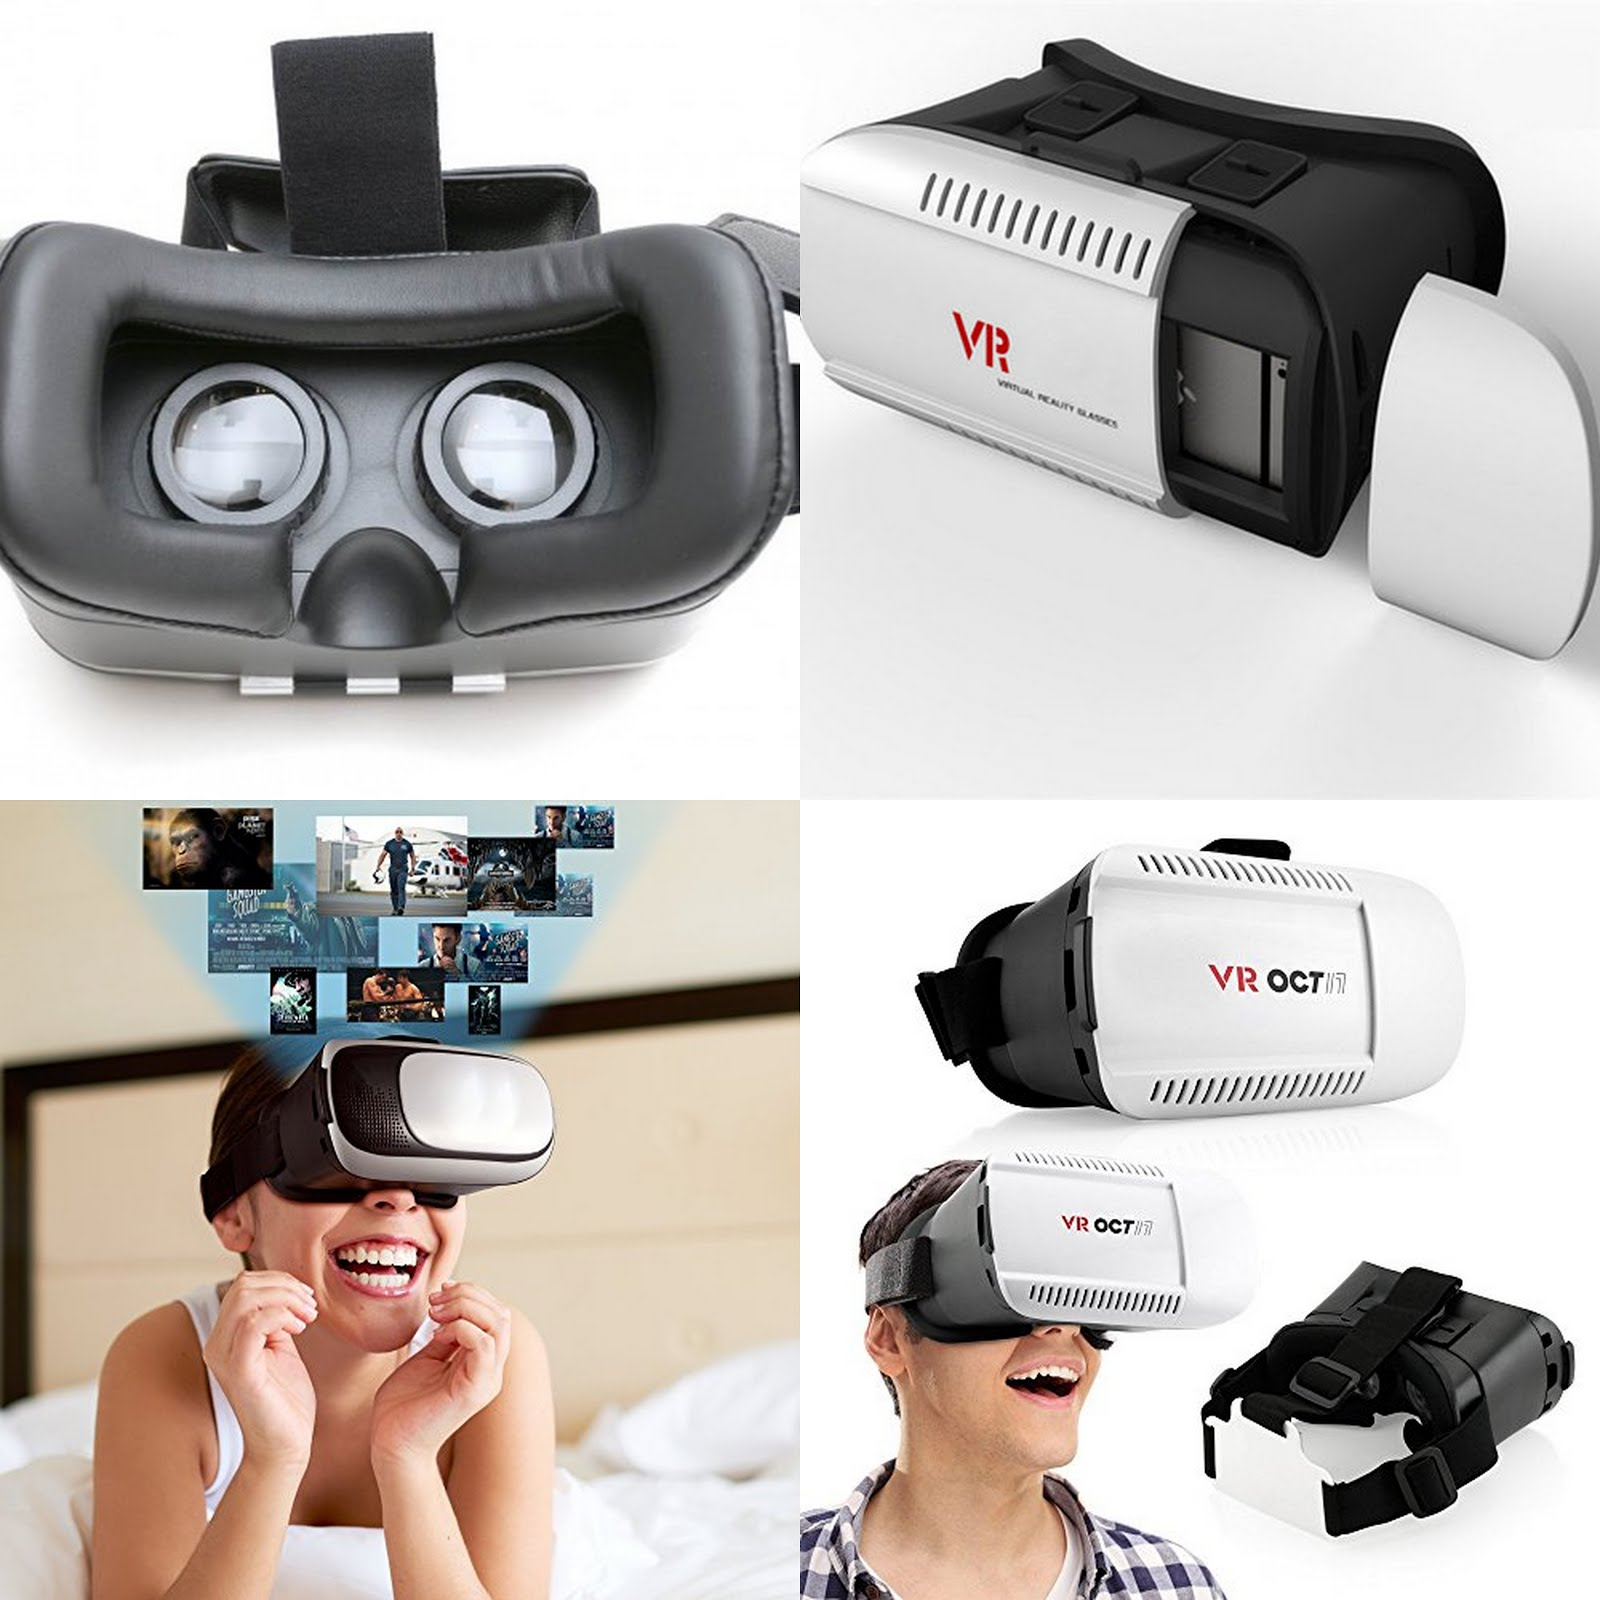 Explore more with Virtual Reality Glasses